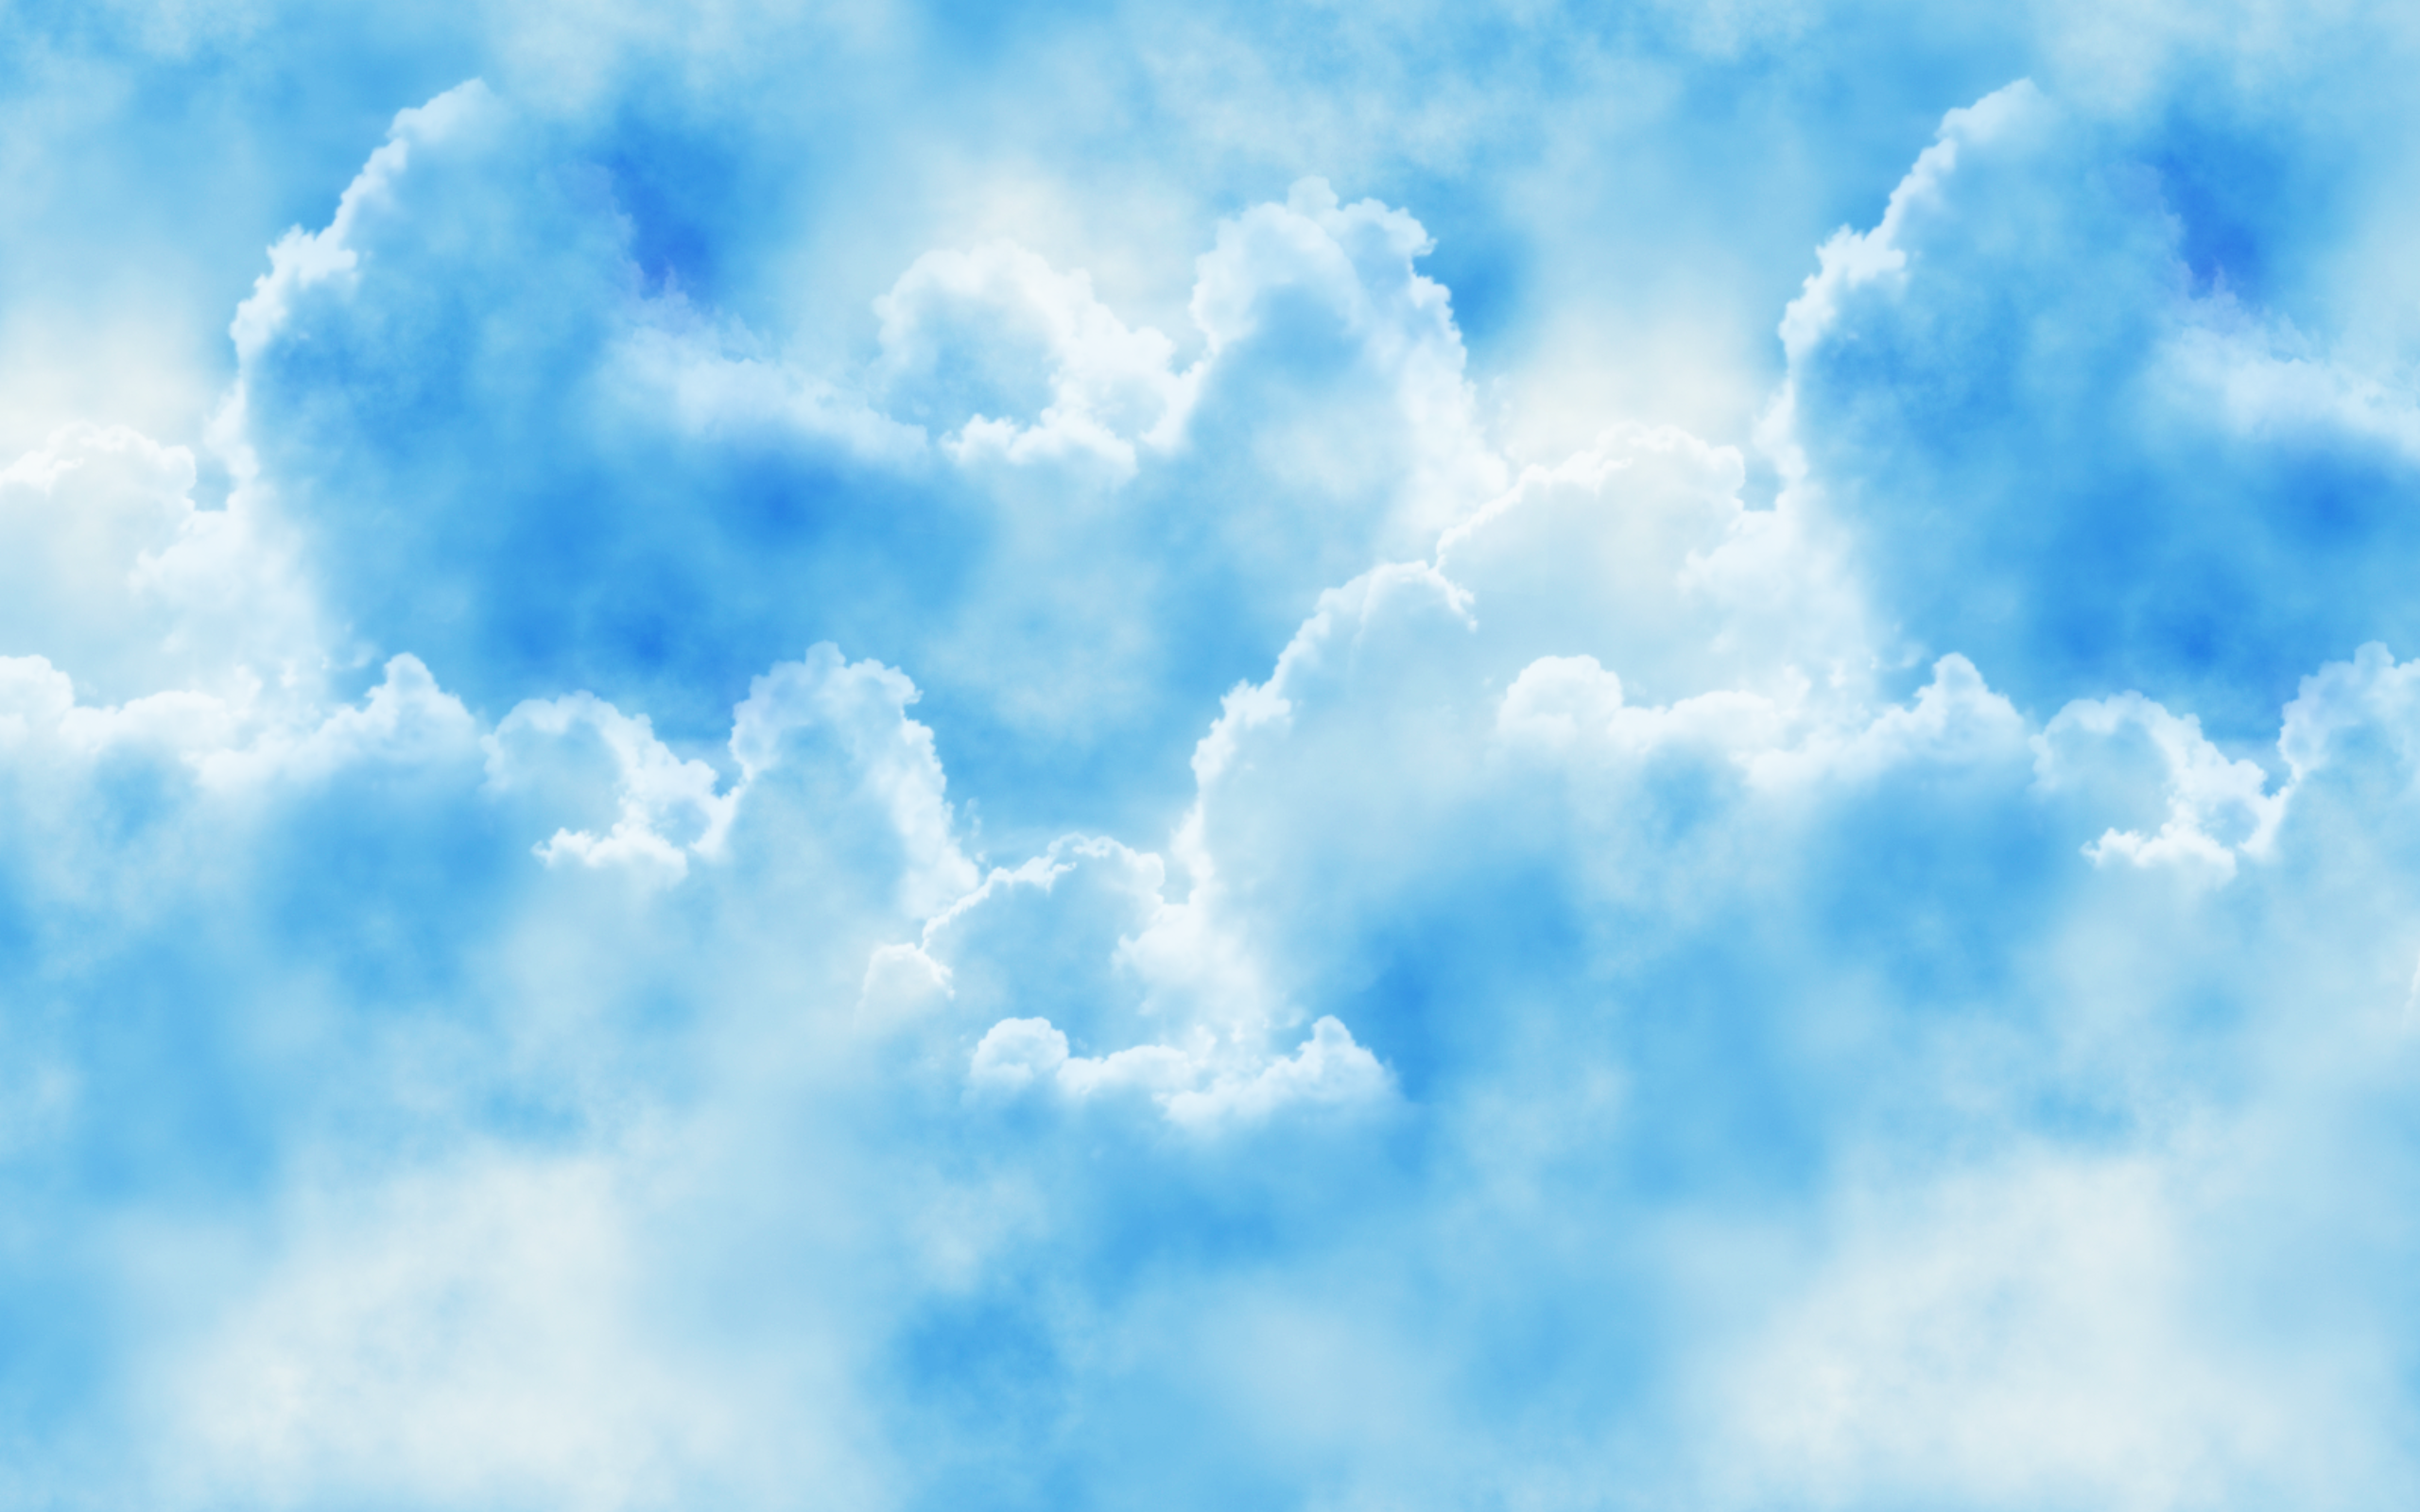 chicken nuggets sky backgrounds 2560x1600